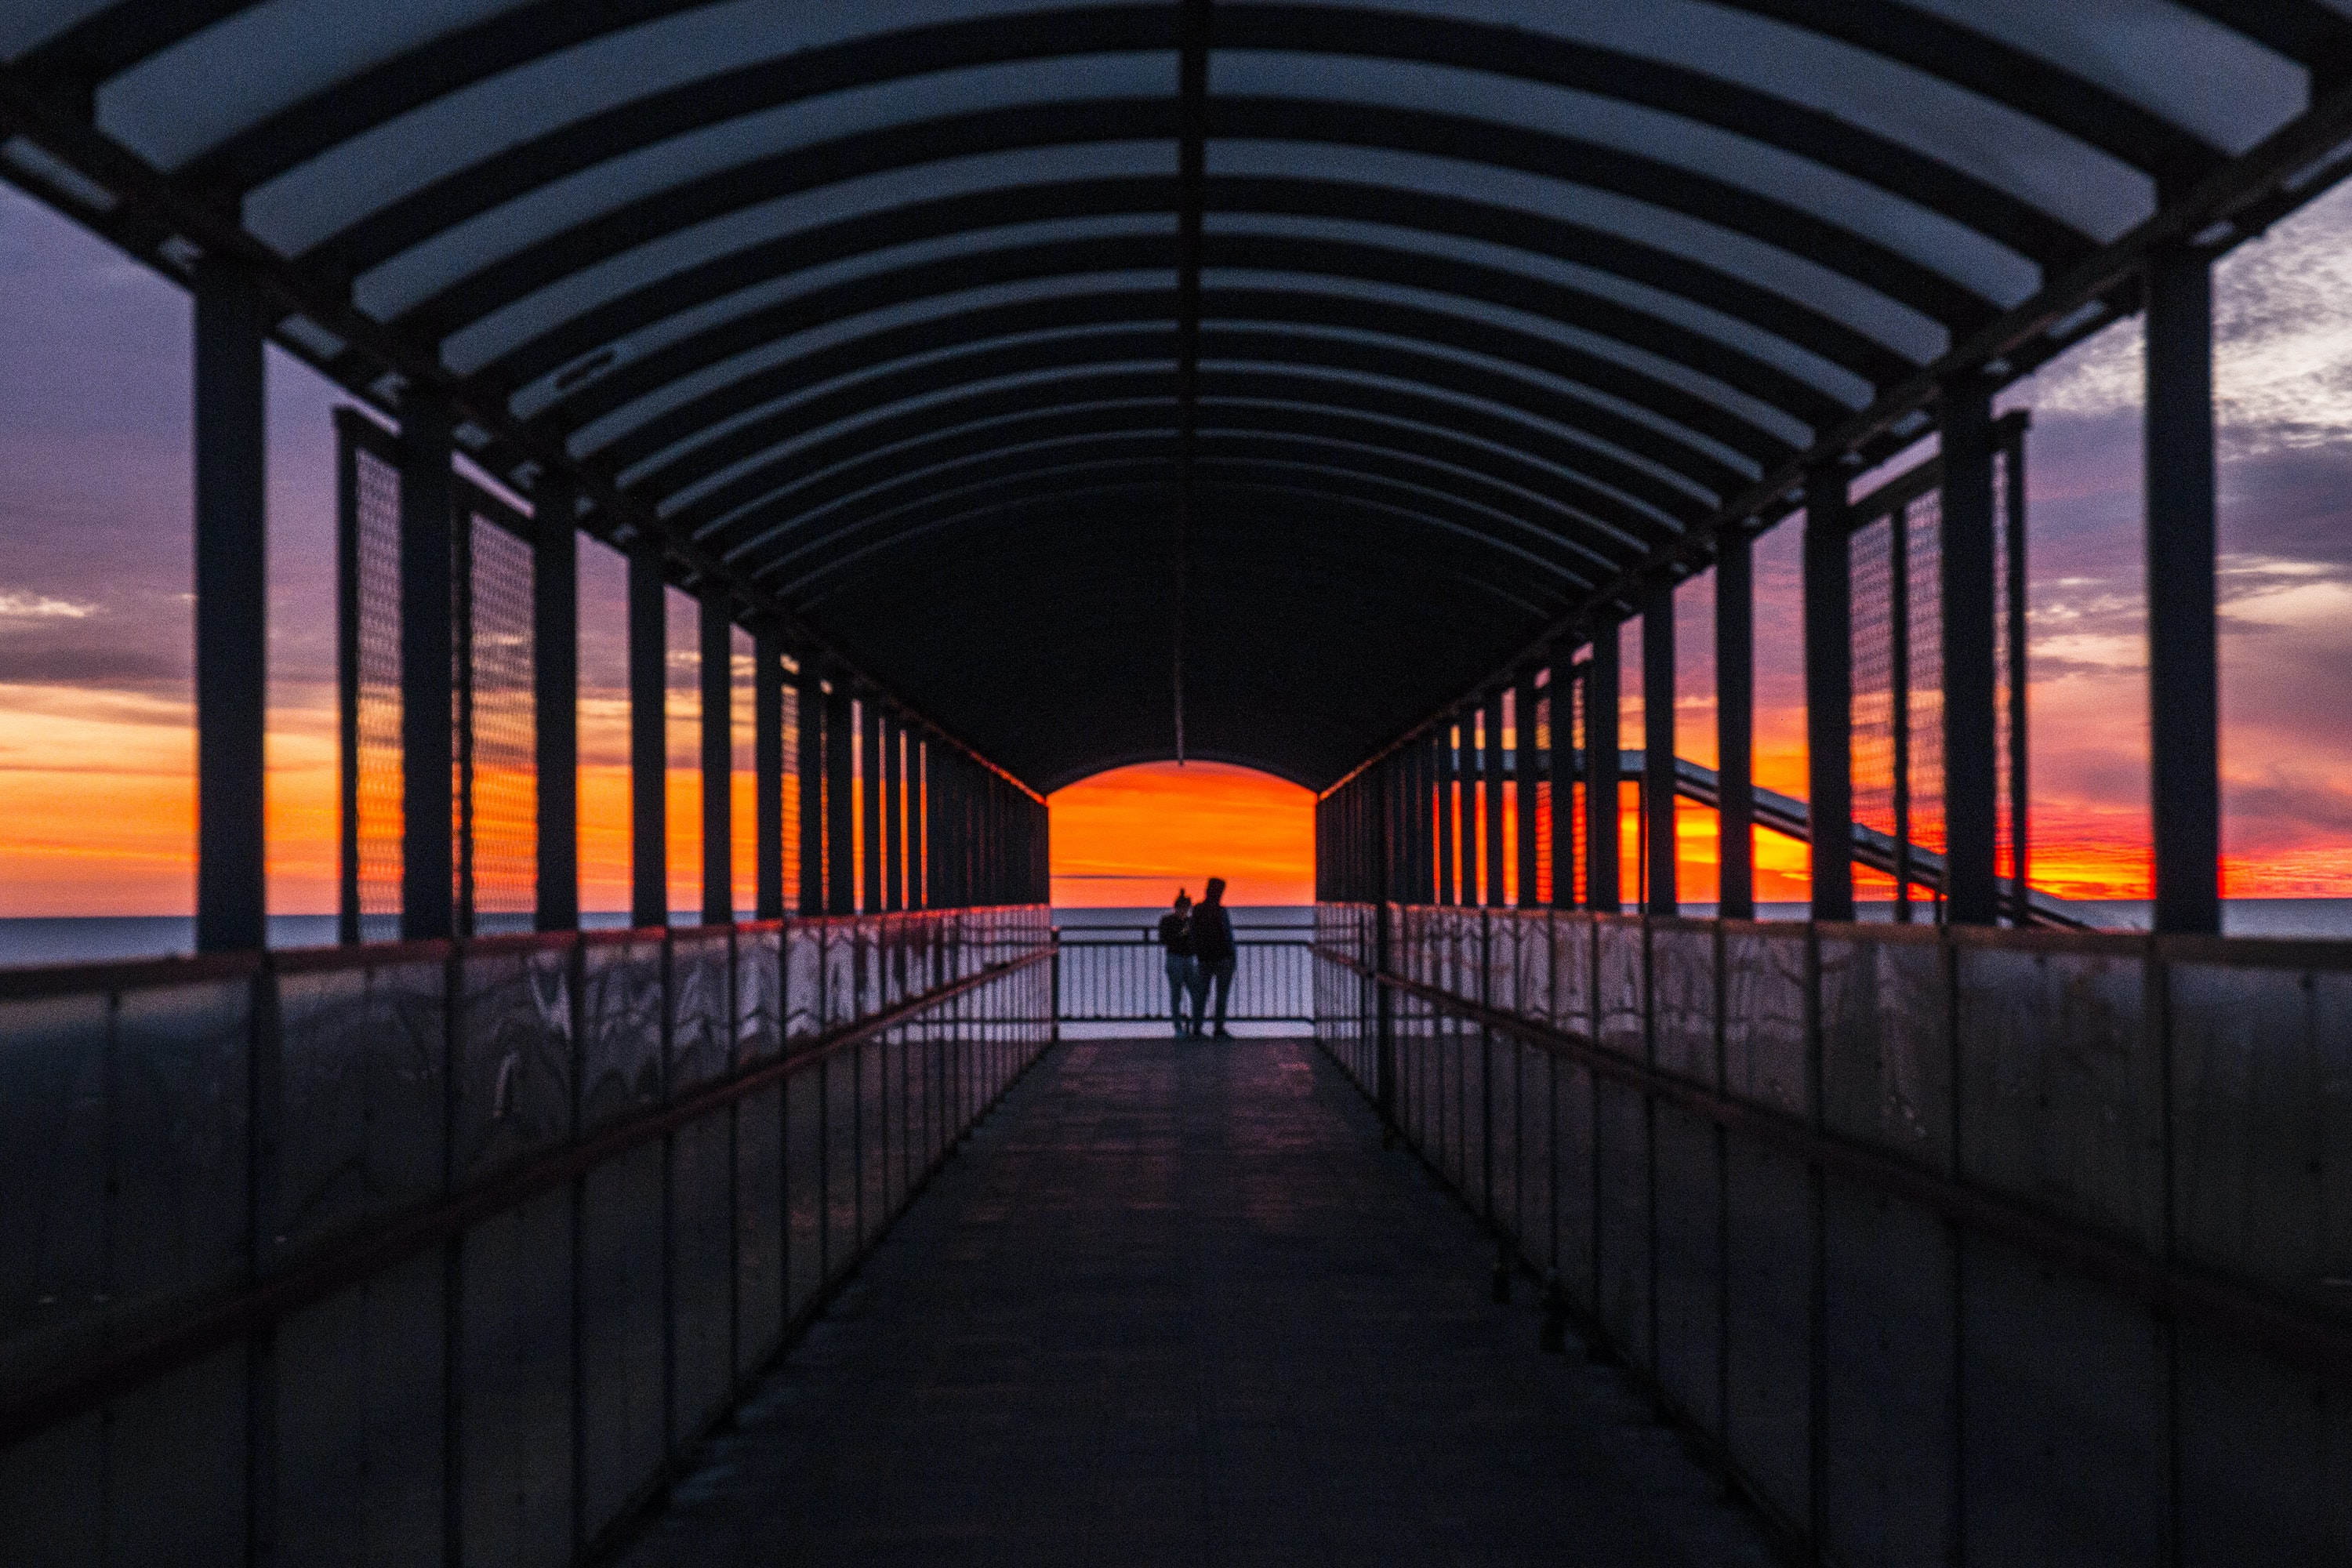 silhouette photo of persons on foot bridge